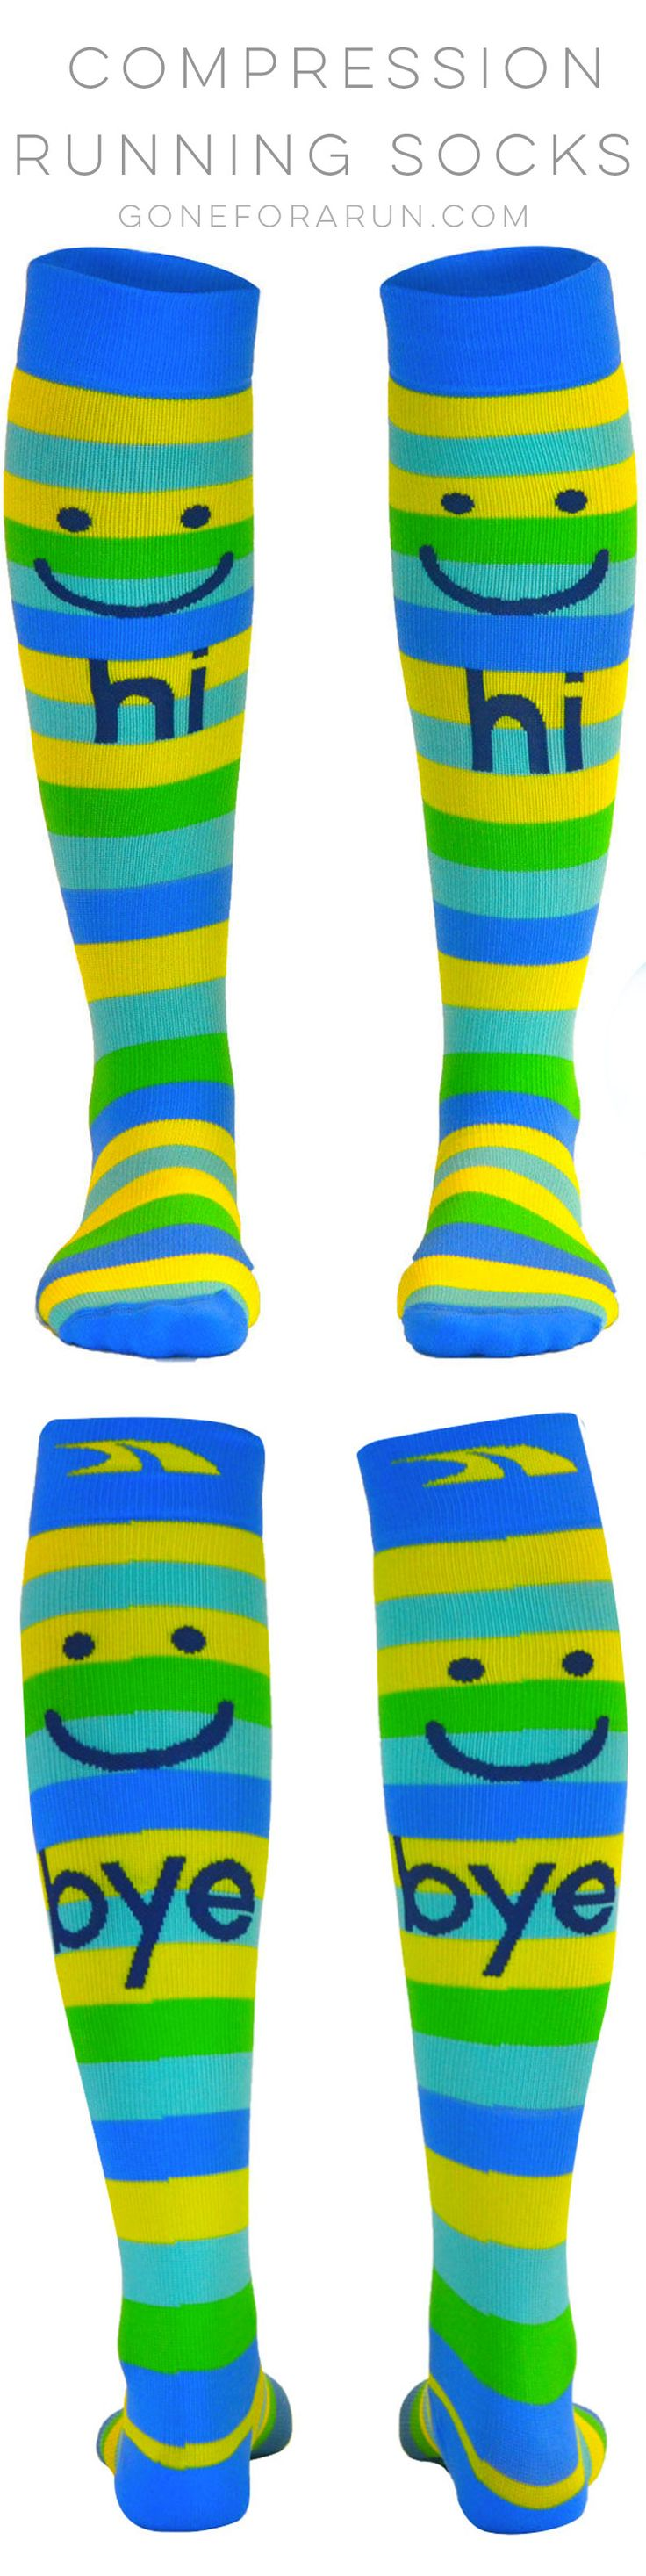 Hi Bye Knee High Compression Running Socks. Let your socks speak for you on your next run! Compression socks that are awesome and affordable from goneforarun.com